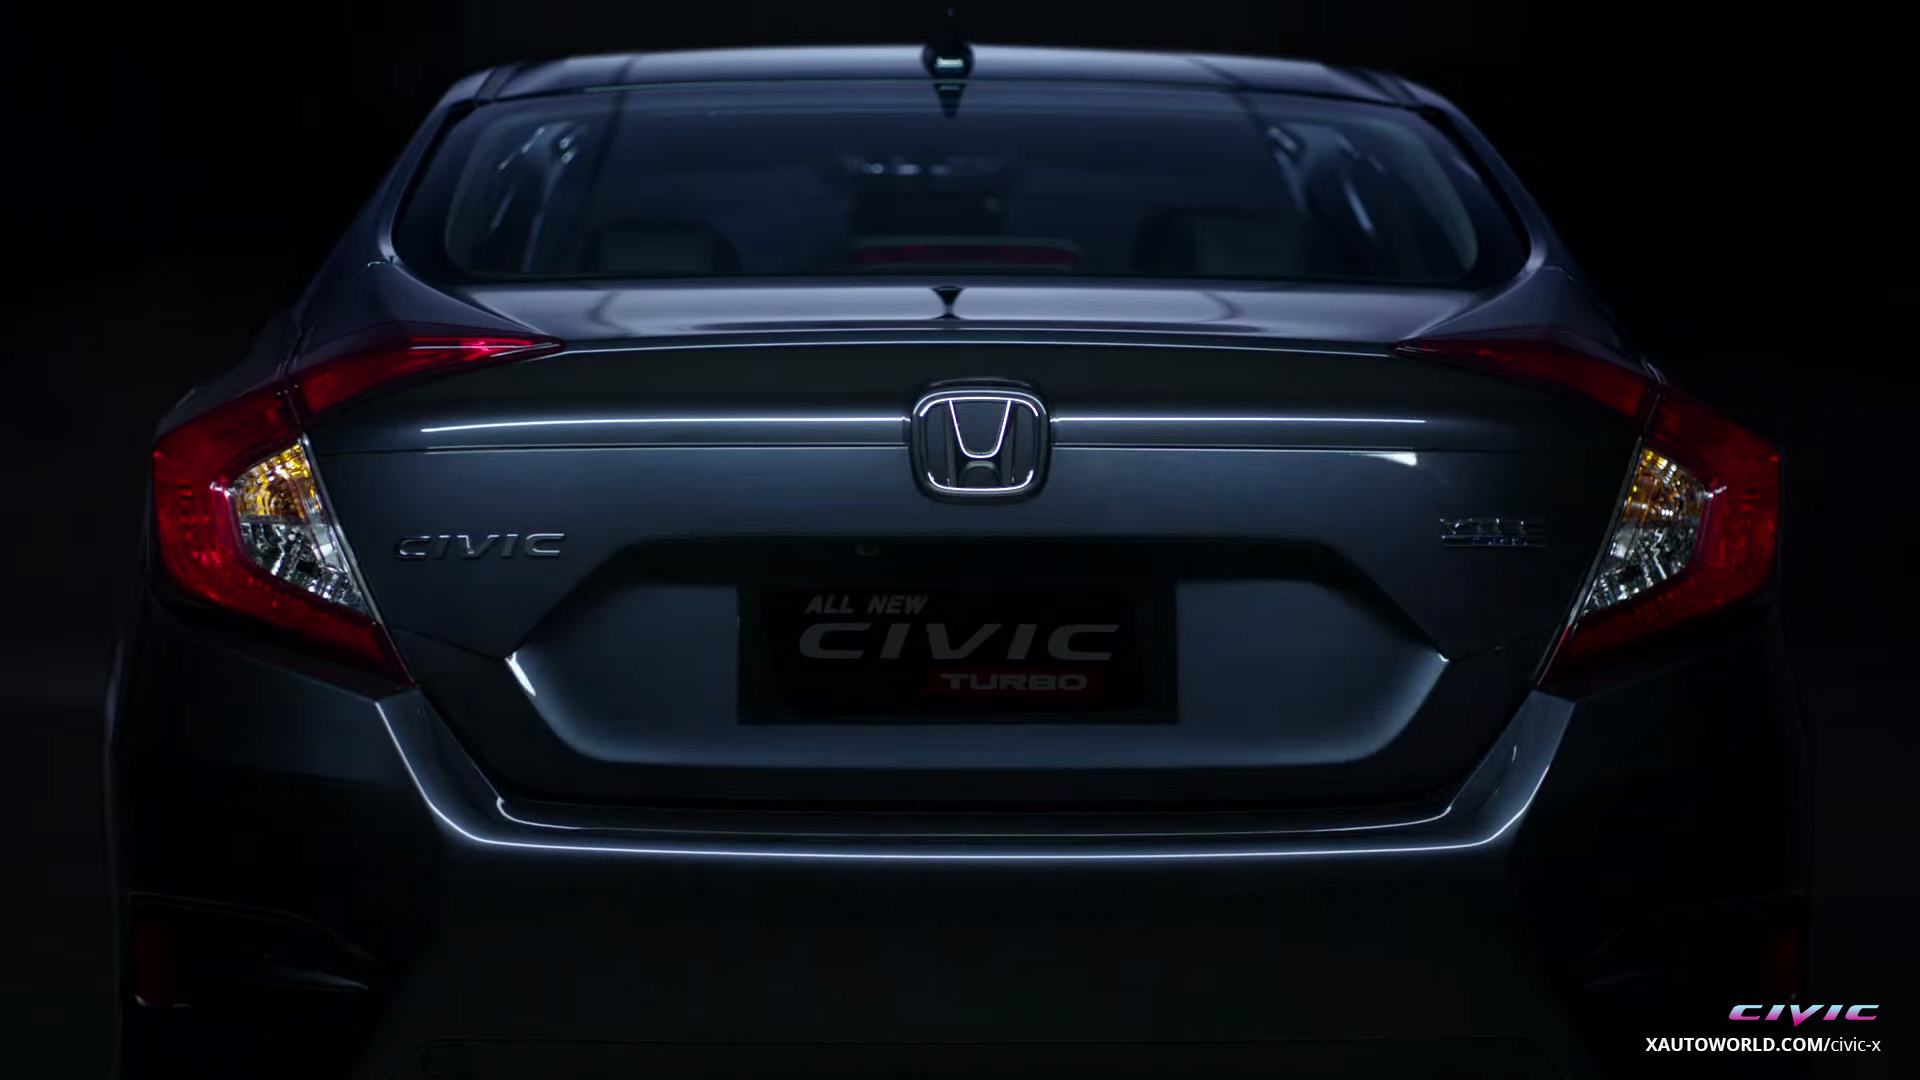 2016 Civic Turbo Rear View